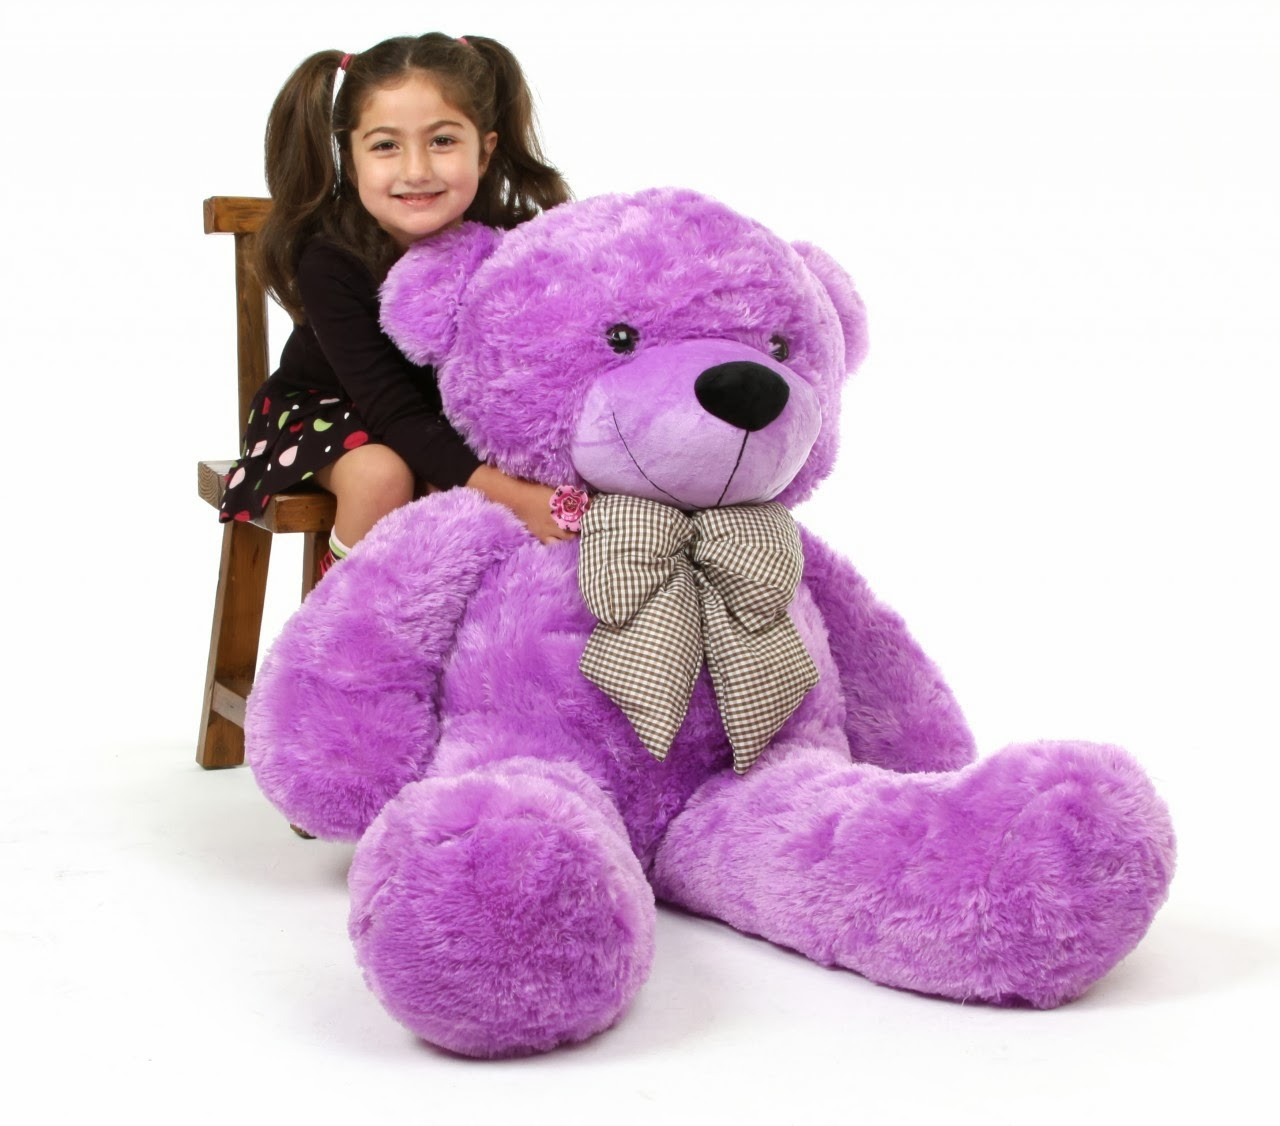 DeeDee Cuddles Purple teddy bear